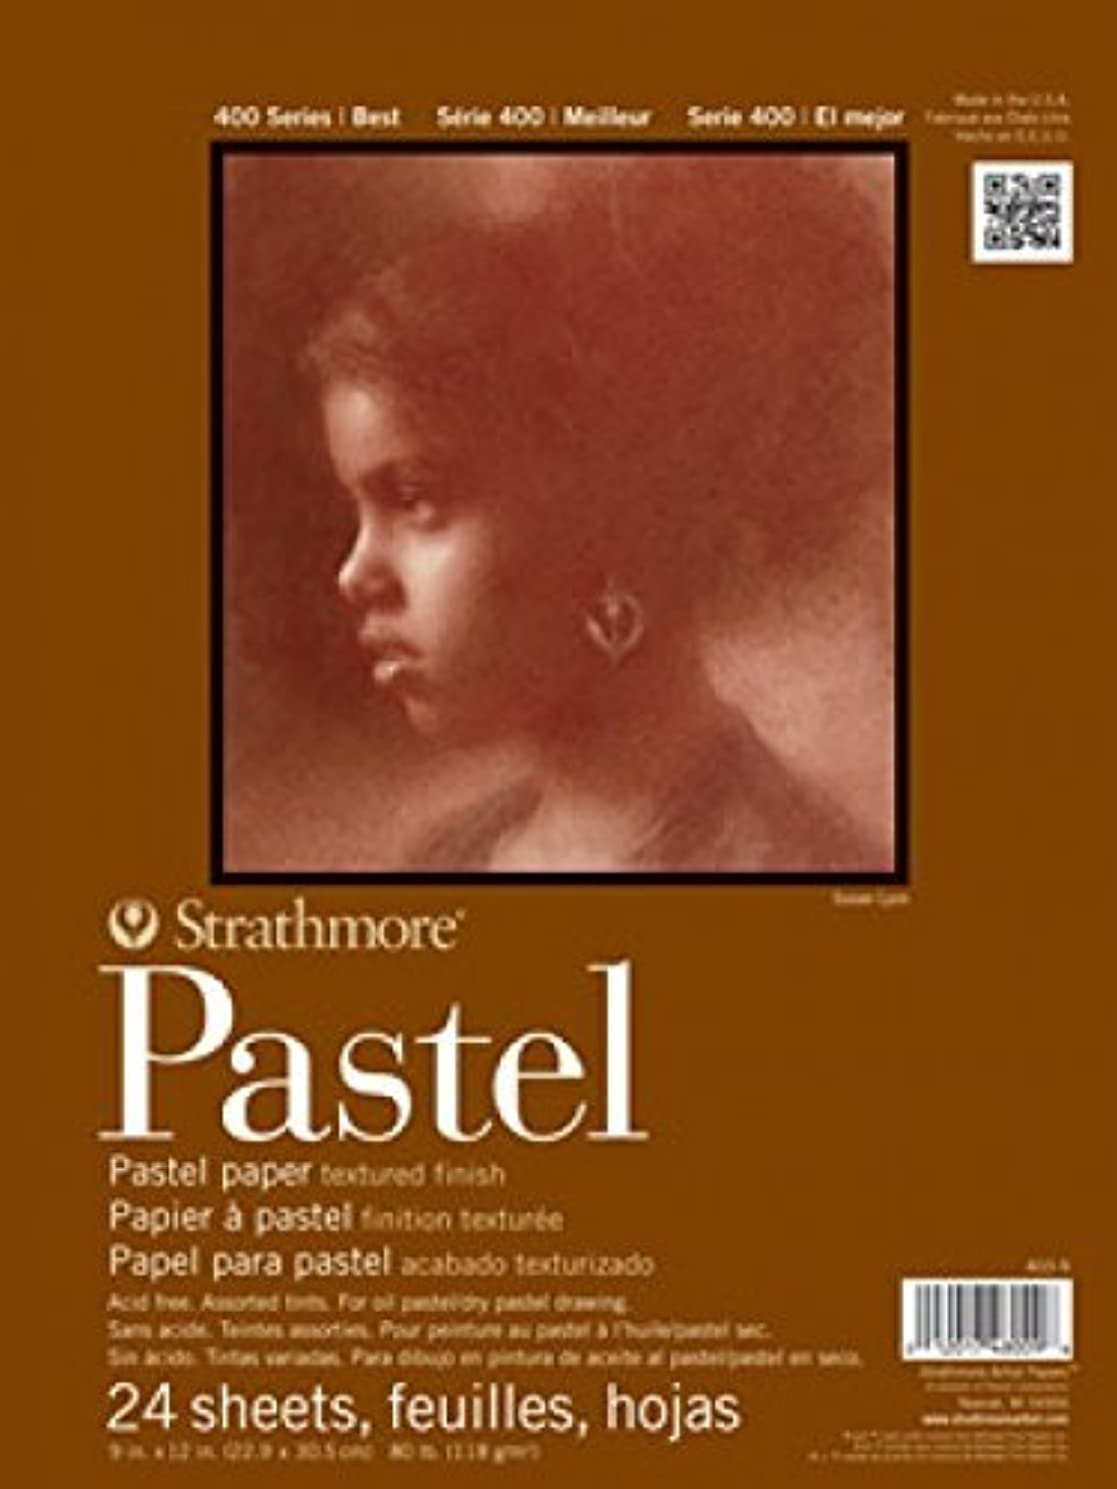 Strathmore 400 Series Pastel Pad, Assorted Colors, 18